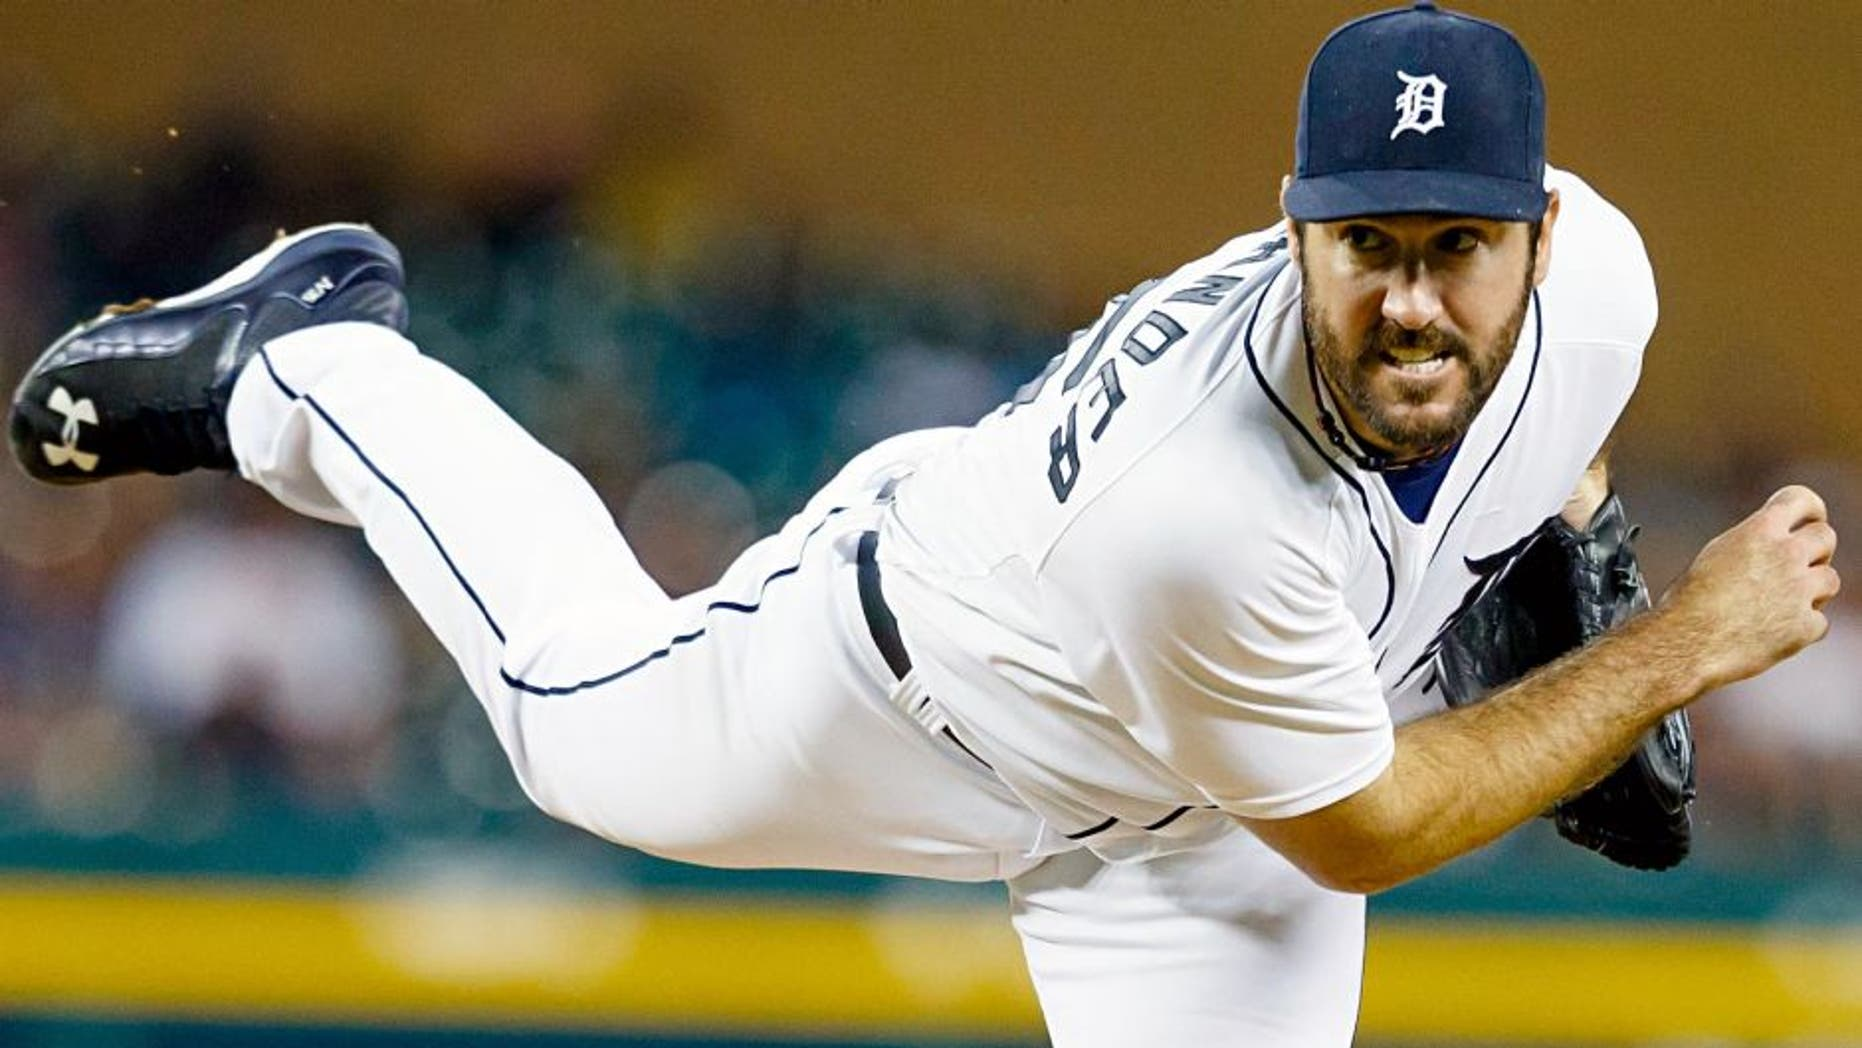 Aug 26, 2015; Detroit, MI, USA; Detroit Tigers starting pitcher Justin Verlander (35) pitches in the eighth inning against the Los Angeles Angels at Comerica Park. Detroit won 5-0. Mandatory Credit: Rick Osentoski-USA TODAY Sports